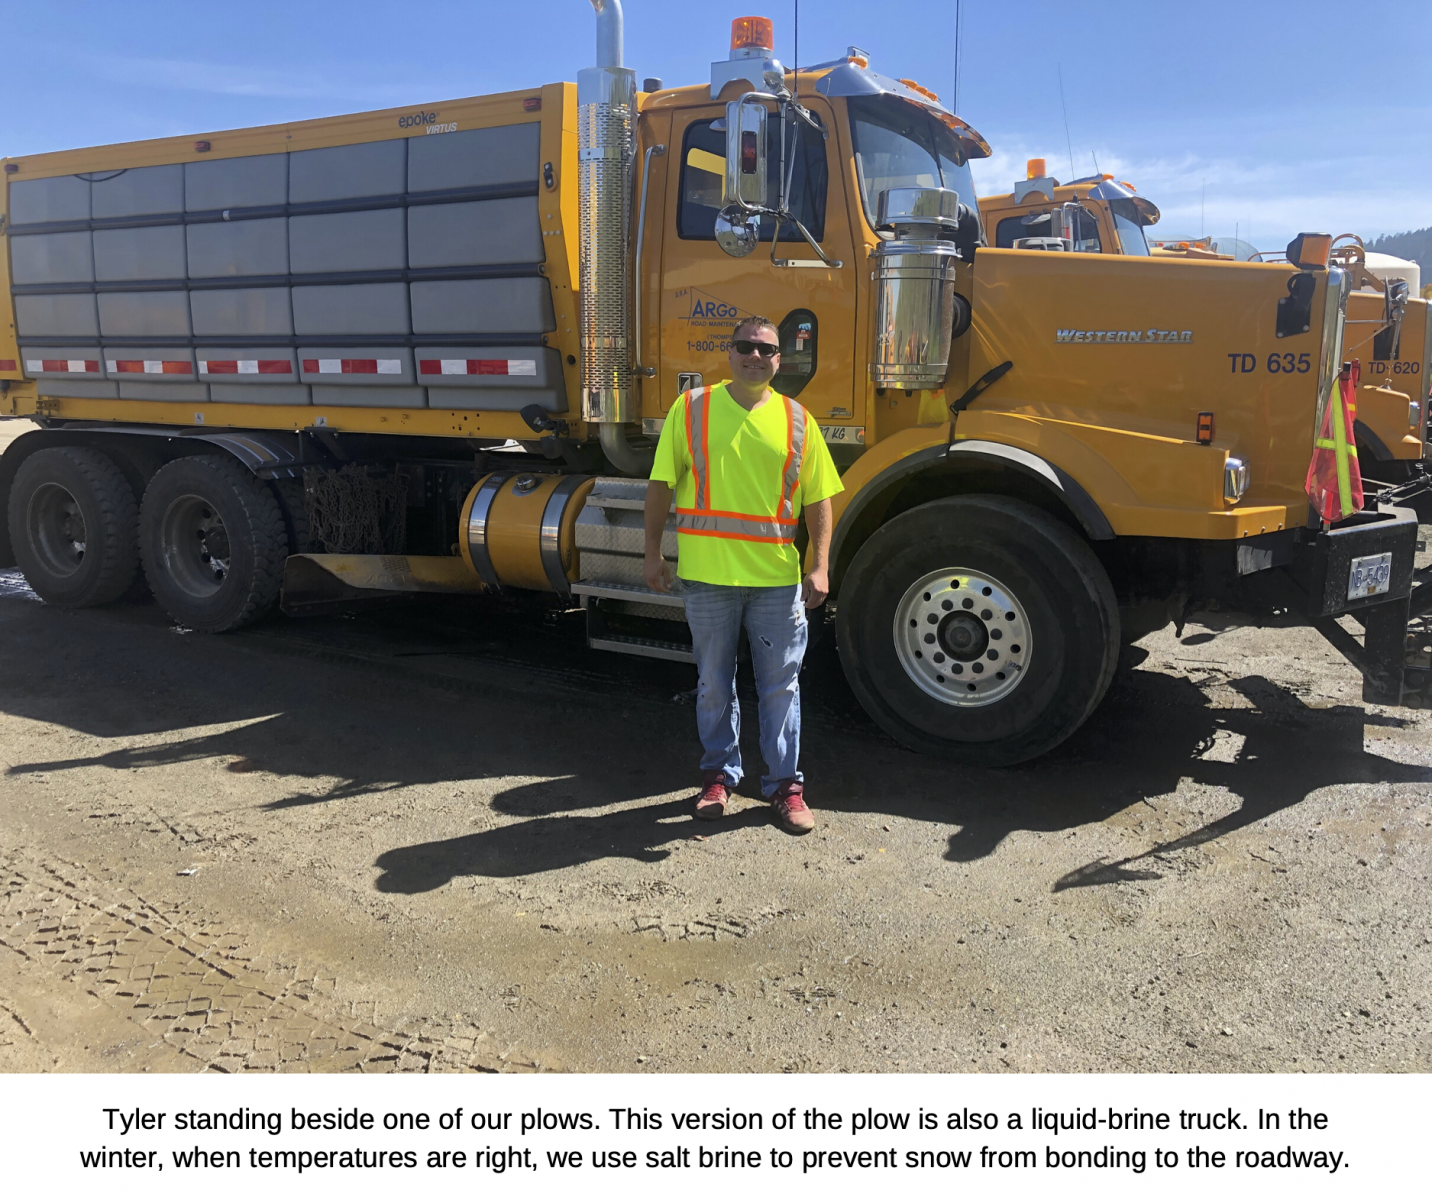 Tyler standing beside one of our plows. This version of the plow is also a liquid brine truck. In the winter, when temperatures are right, we use salt brine to prevent snow from bonding to the roadway.